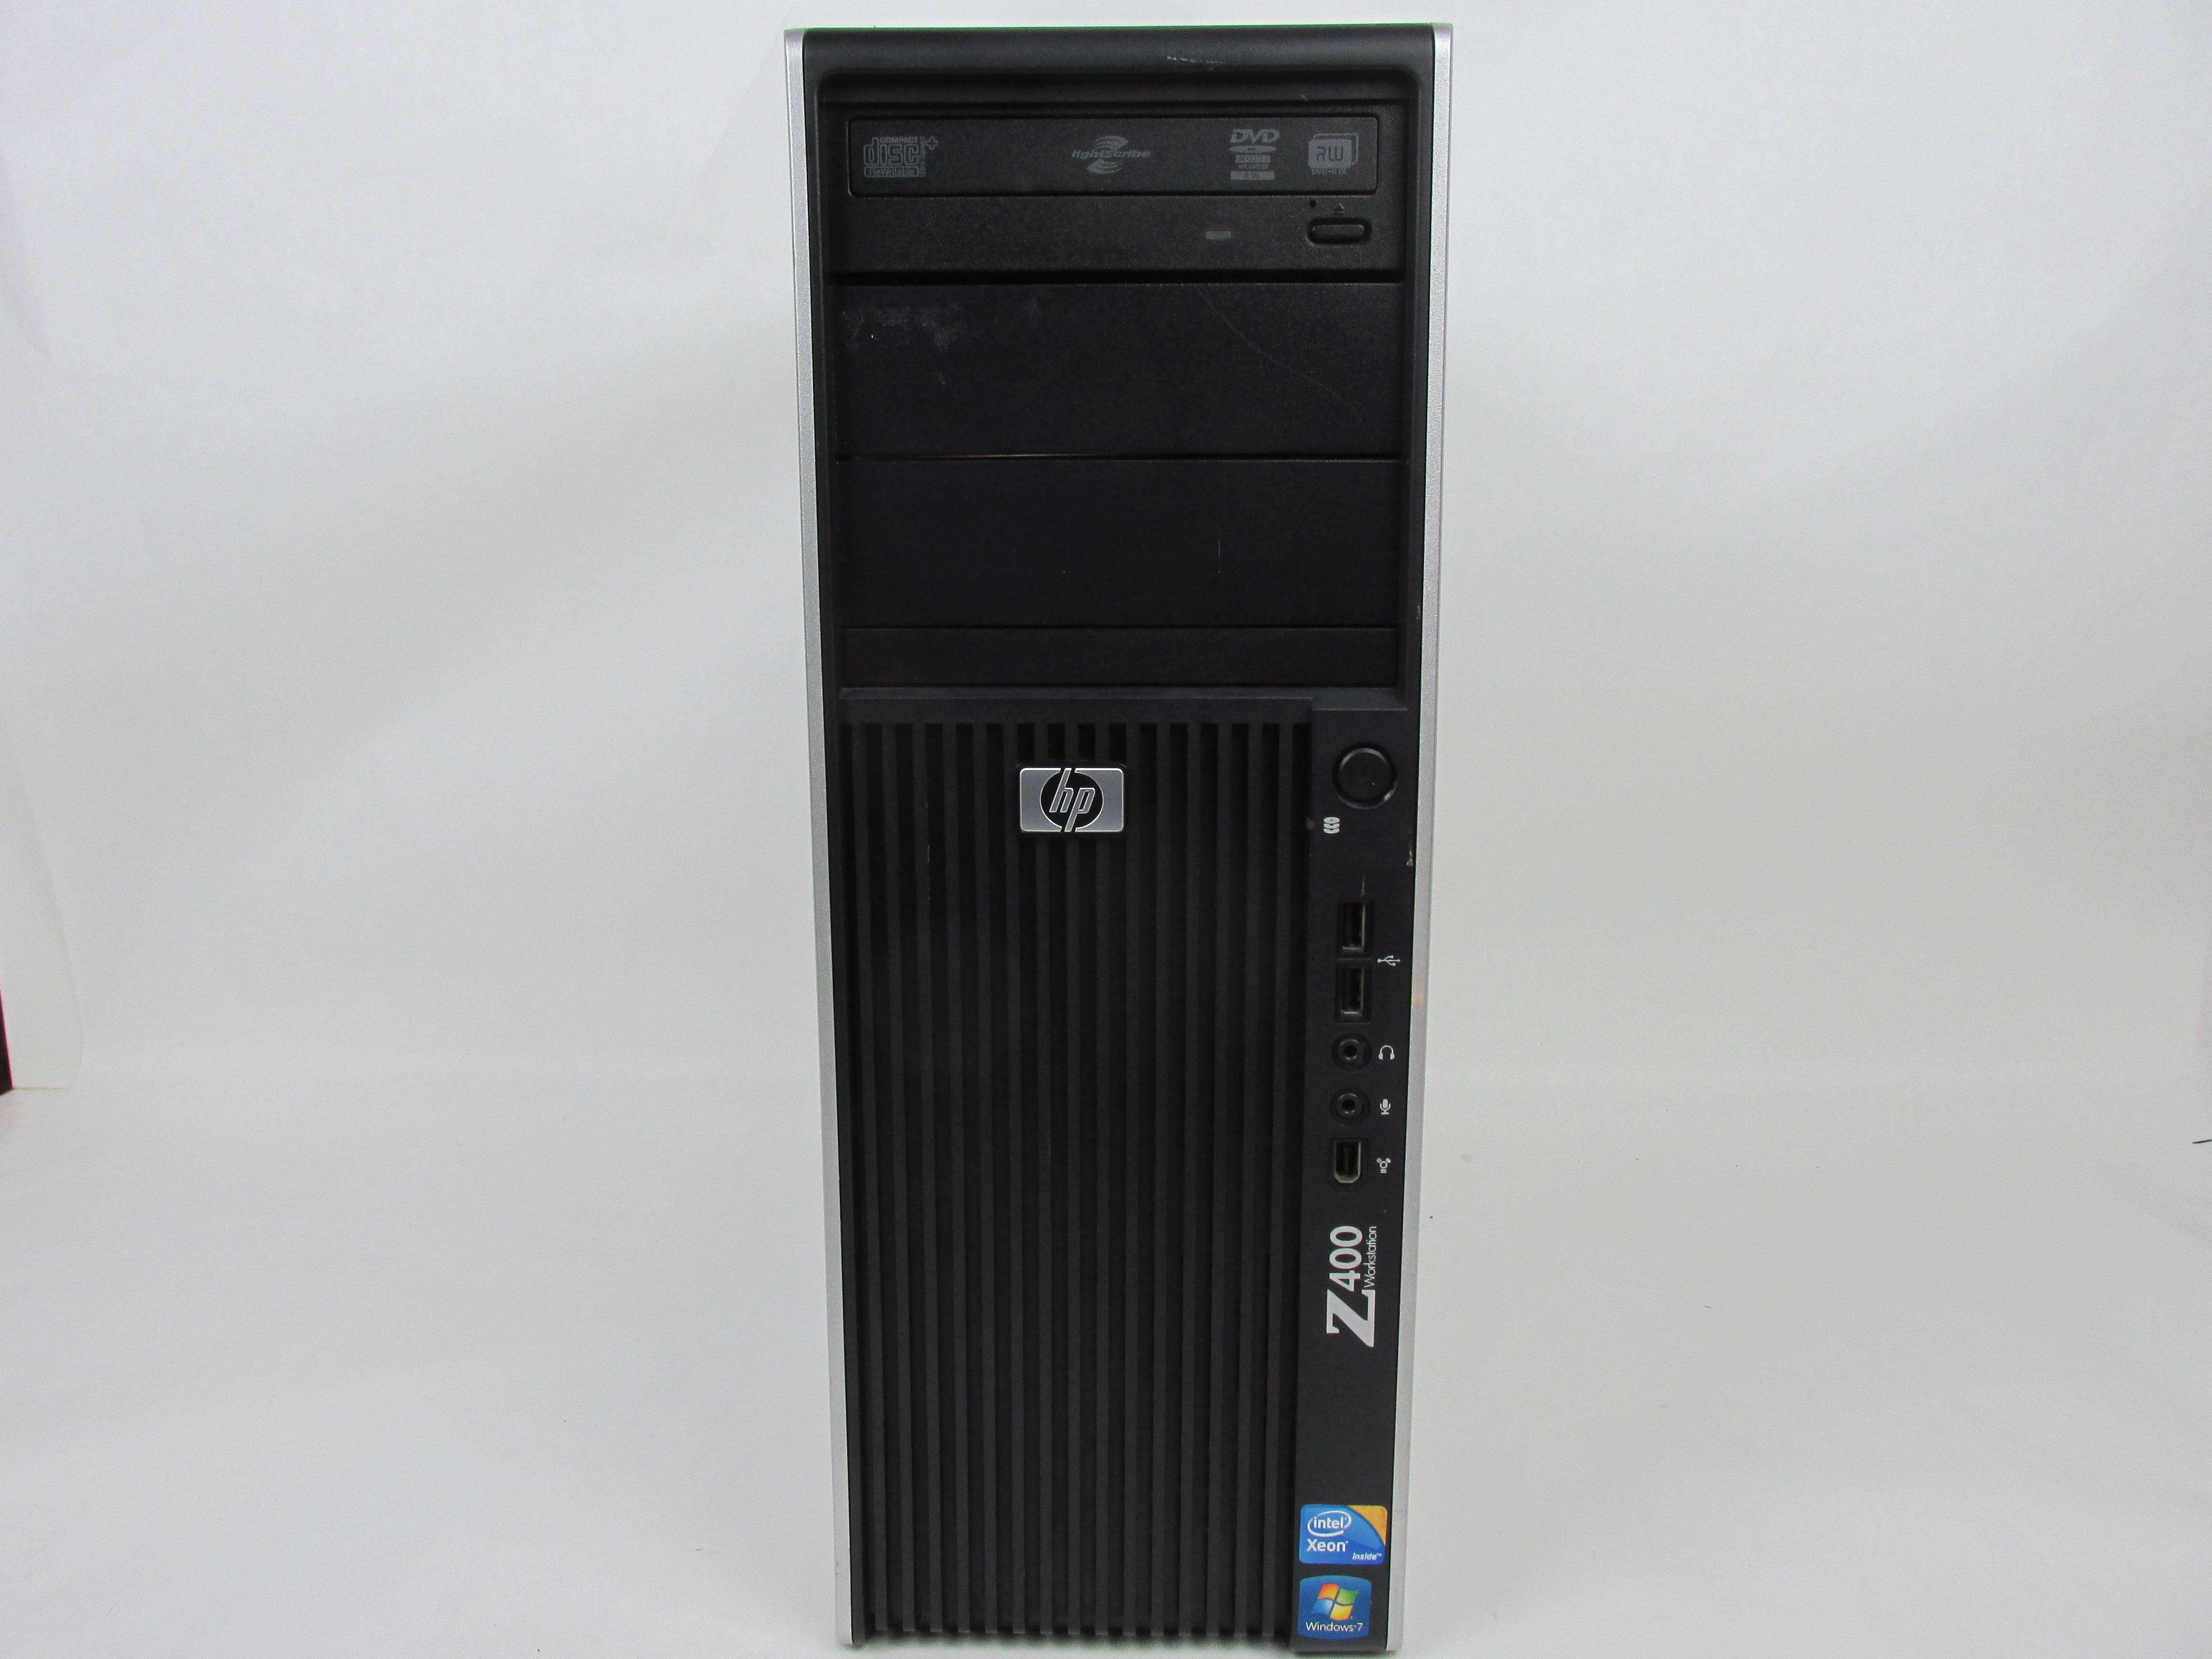 HP Workstation Z400 MT Intel Xeon W3550 3.06GHz Quad 8GB 640GB Windows 10